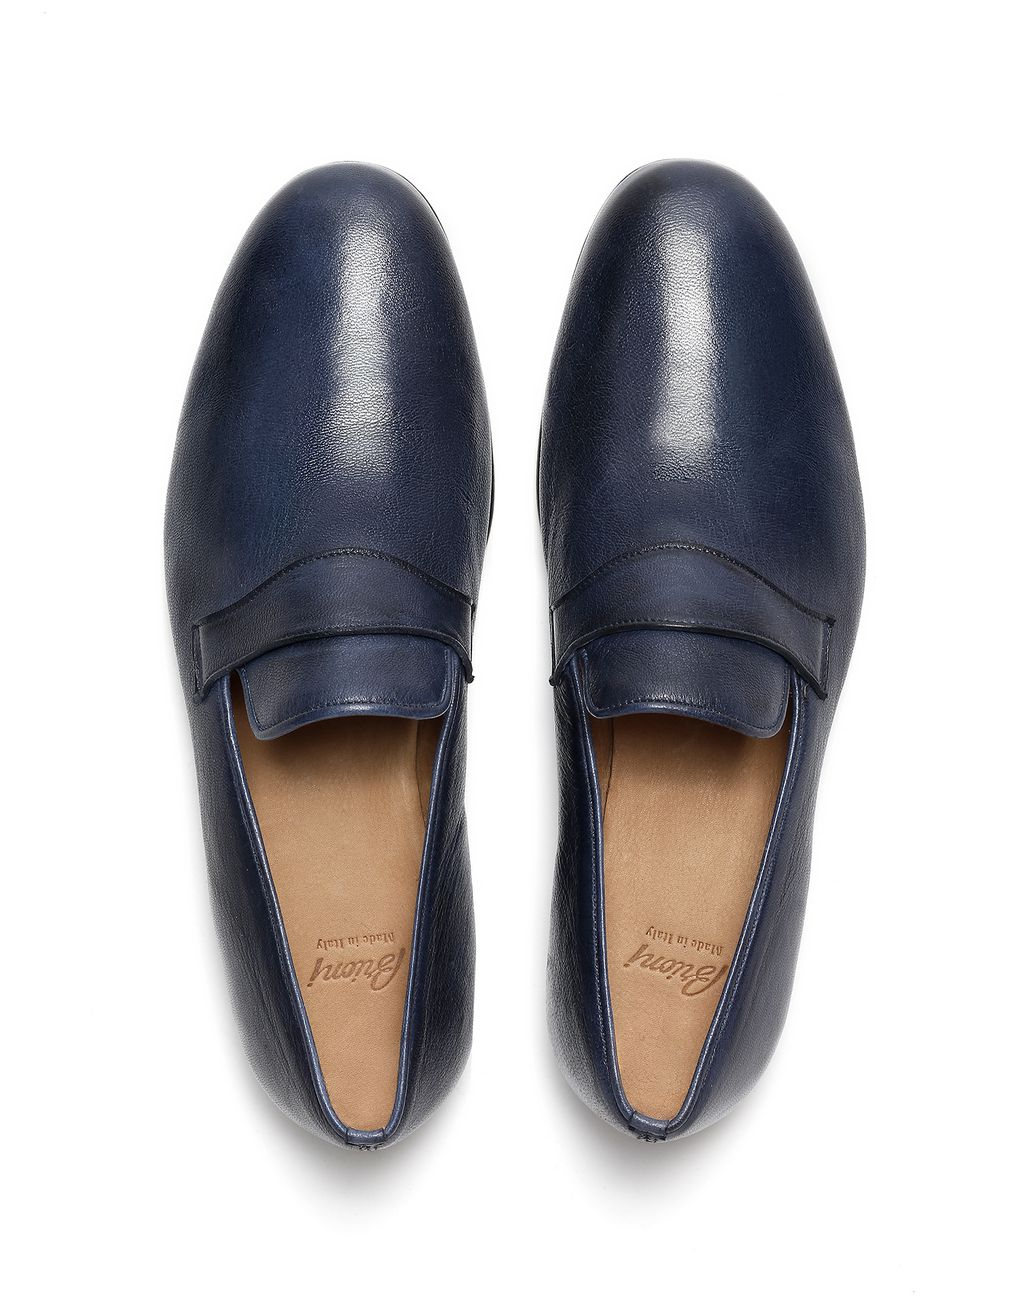 BRIONI Marineblaue Loafers Foot Glove Elegante Schuhe Herren r